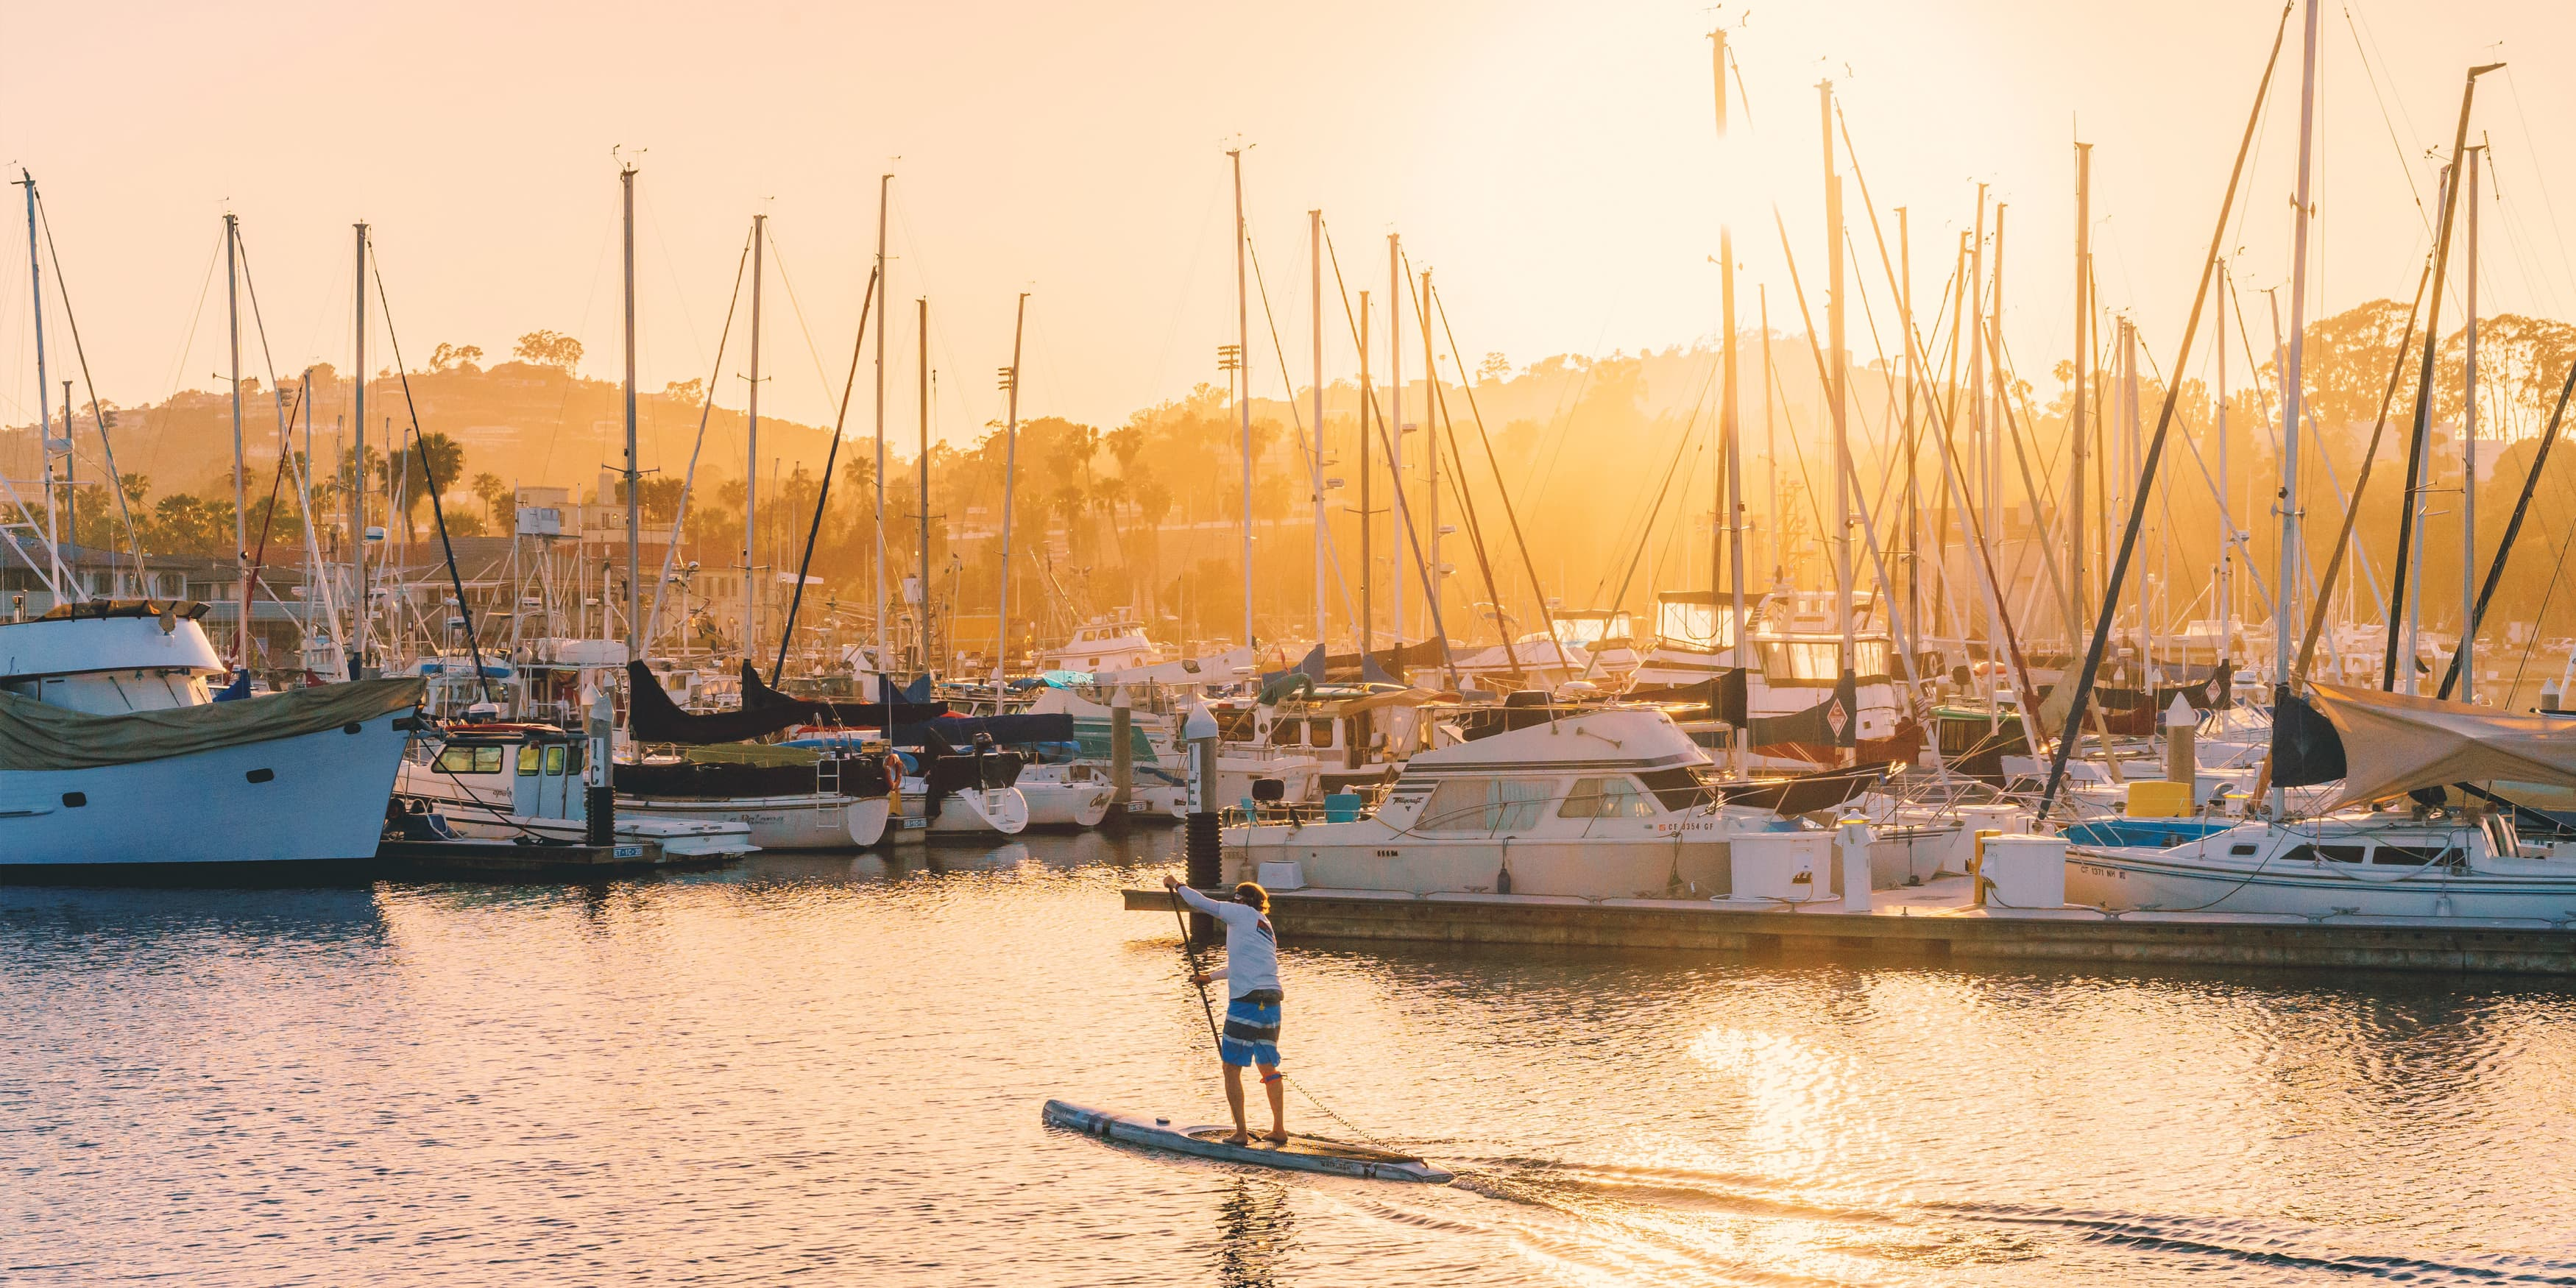 The City of Dana Point, man paddle-boards at sunset in the Dana Point Harbor